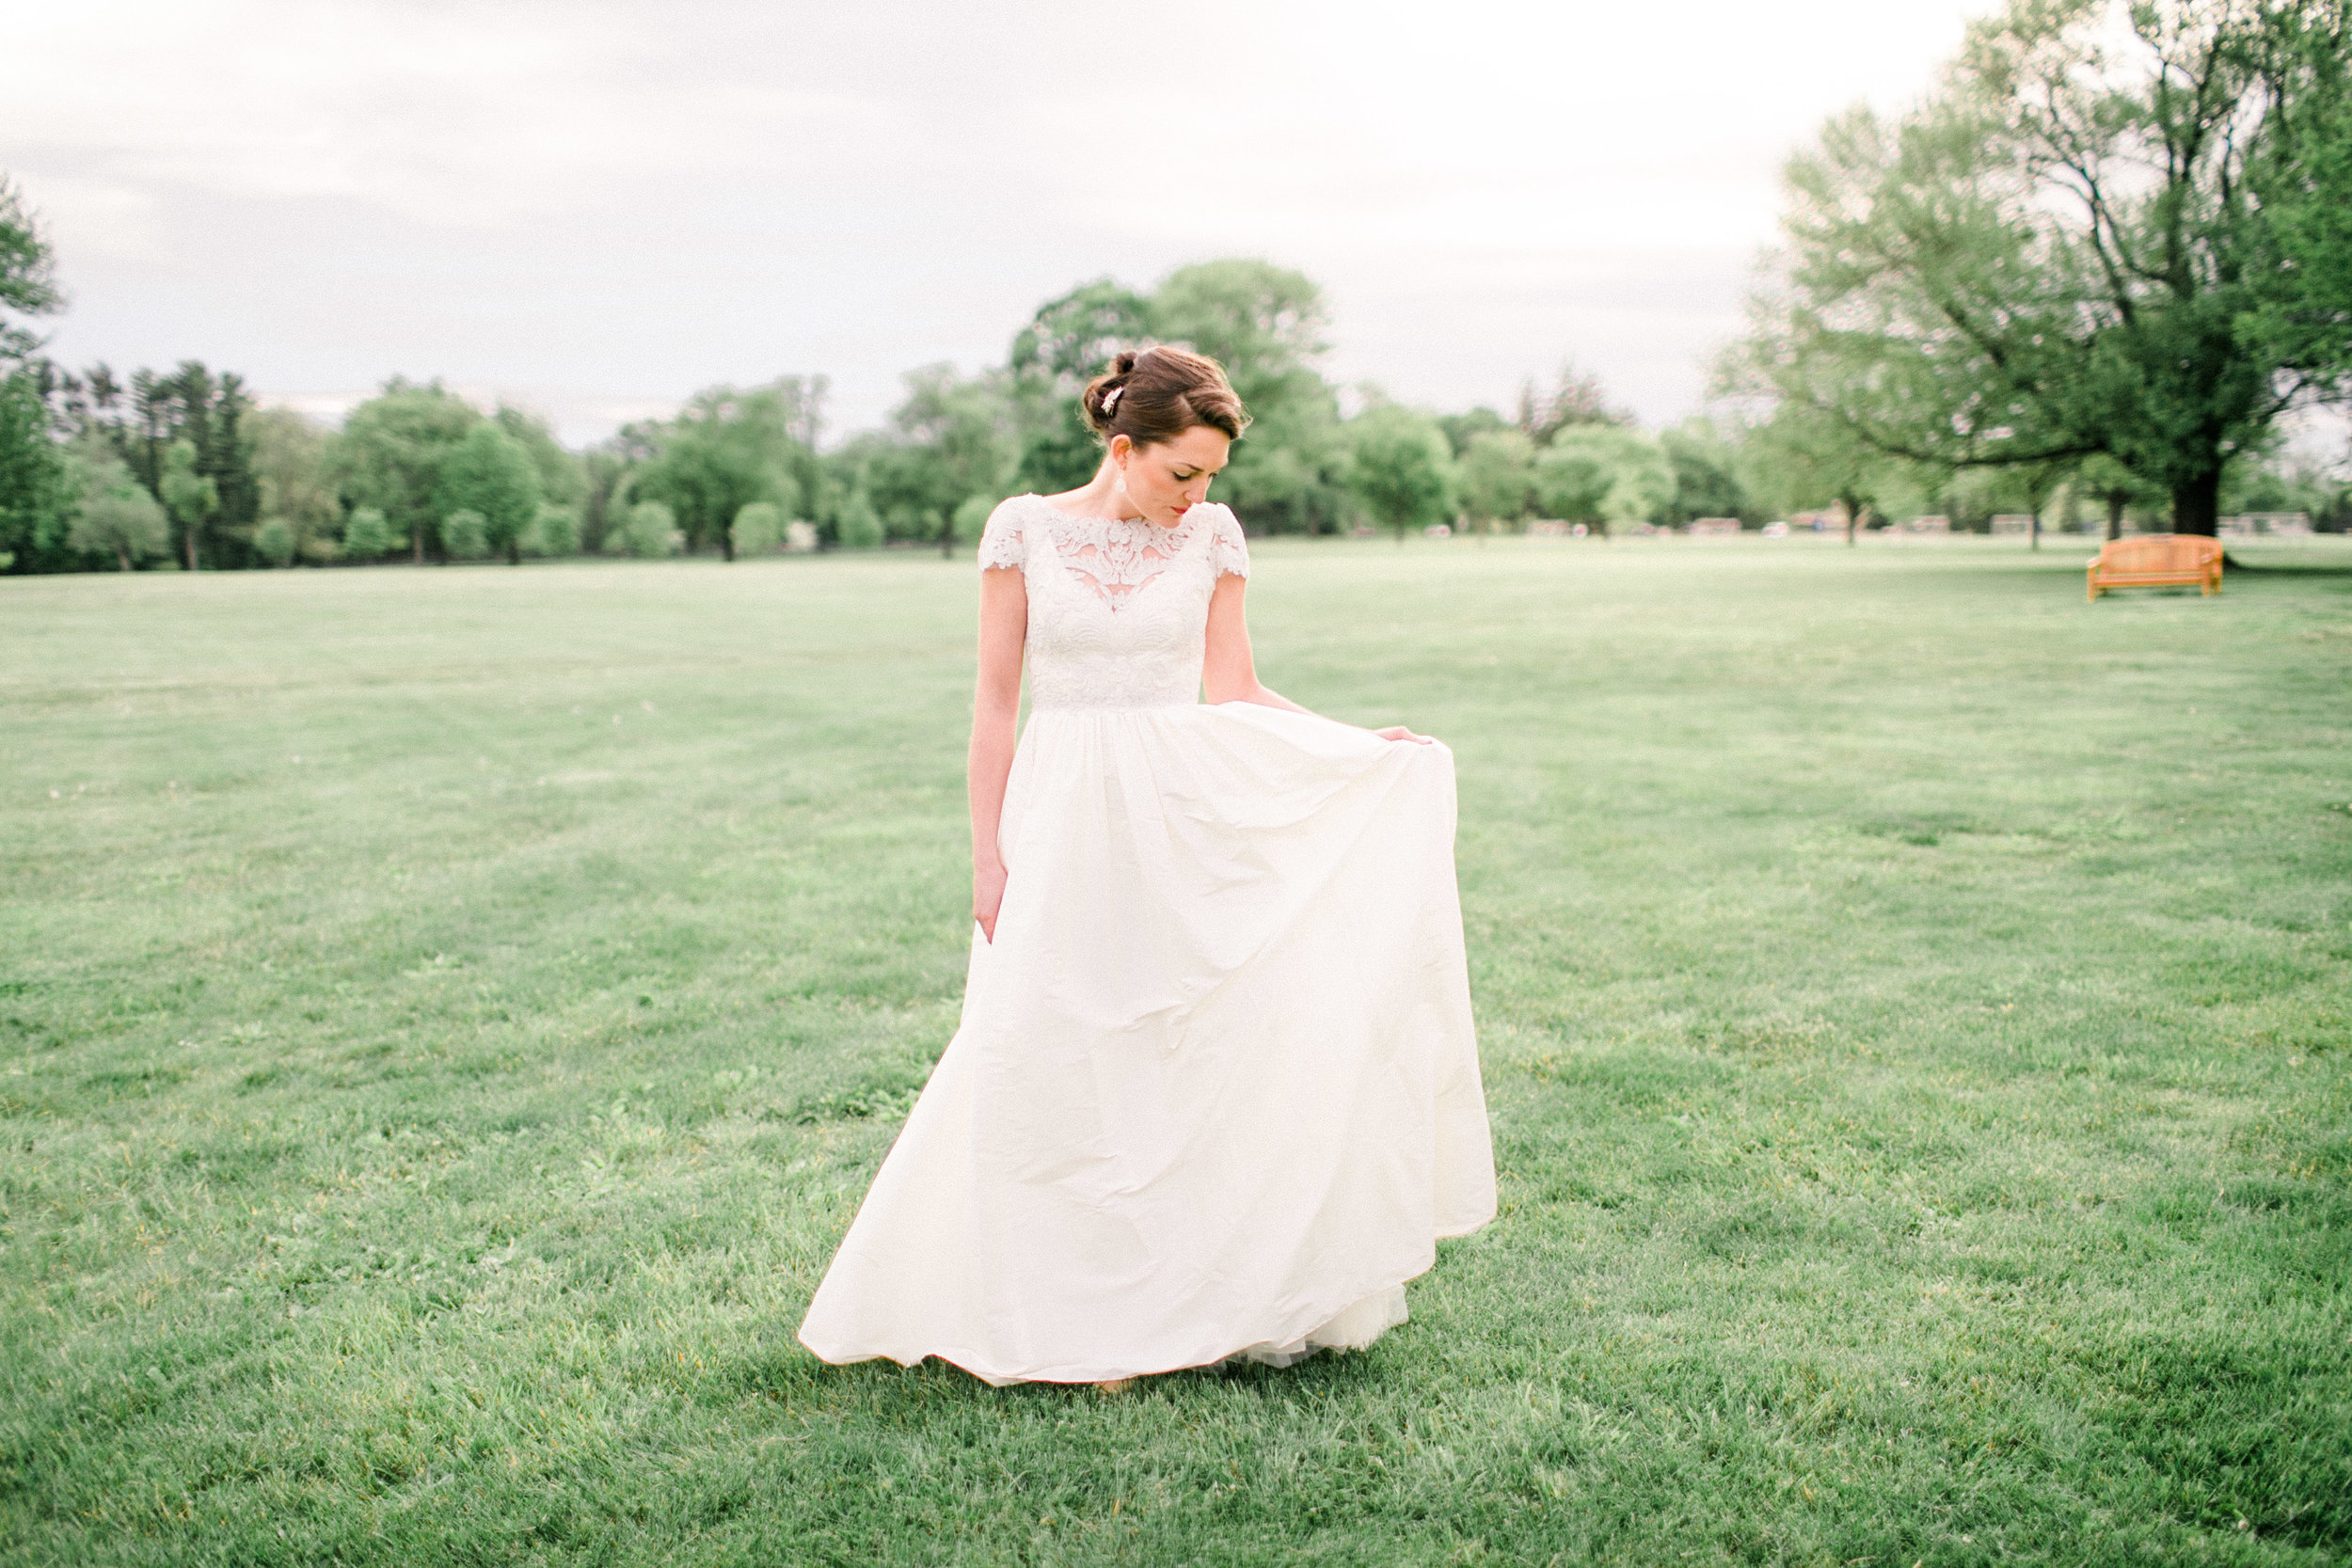 mayden photography weddings-131.jpg